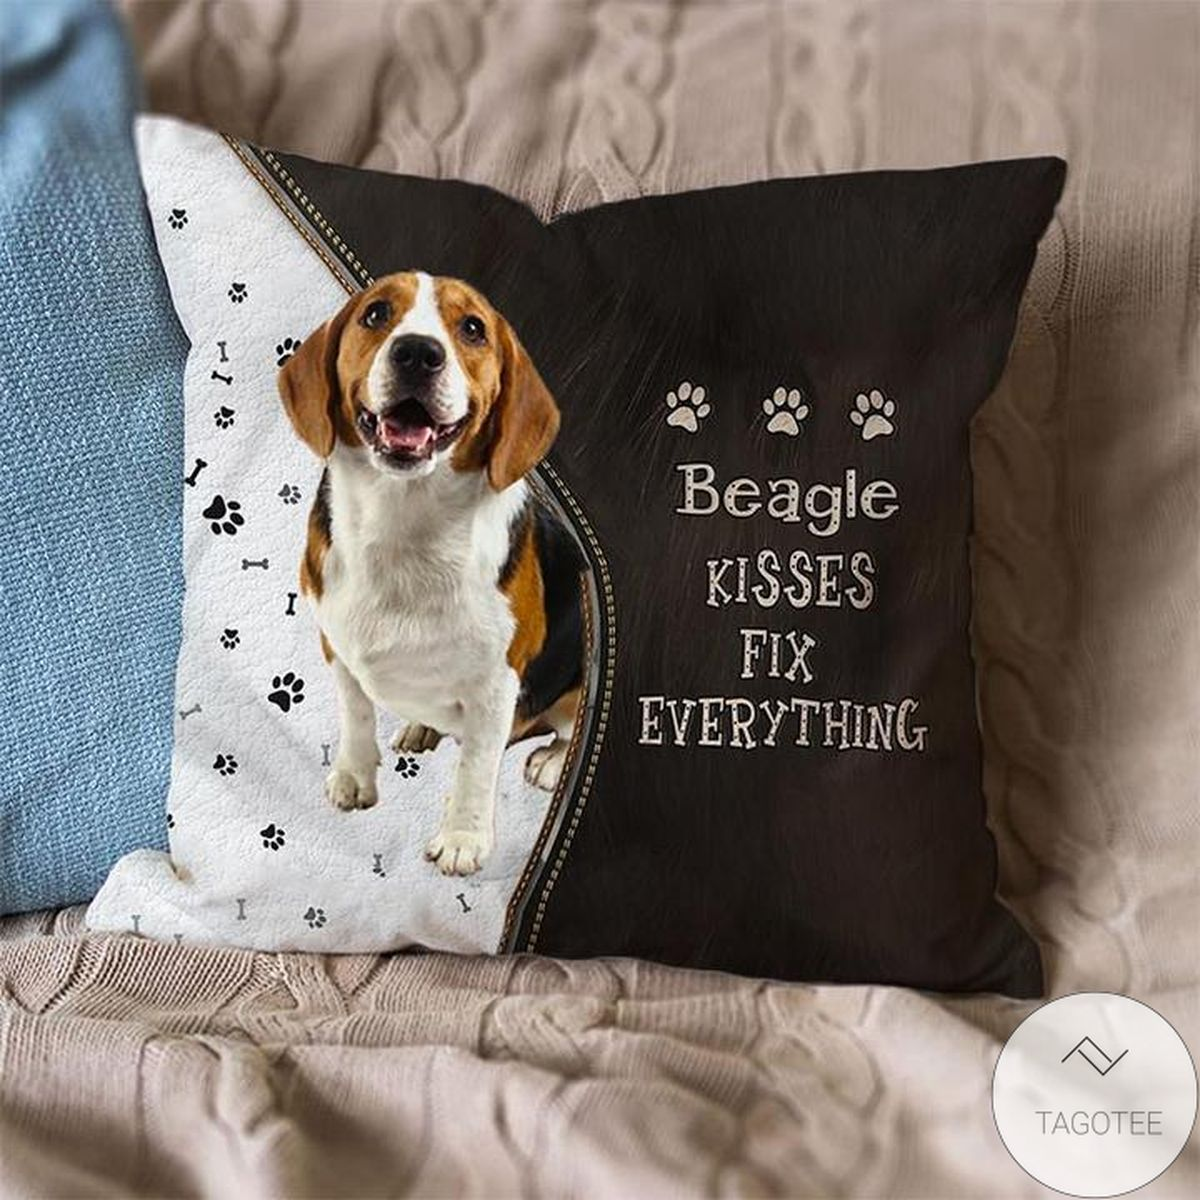 Great Quality Beagle Kisses Fix Everything Pillowcase